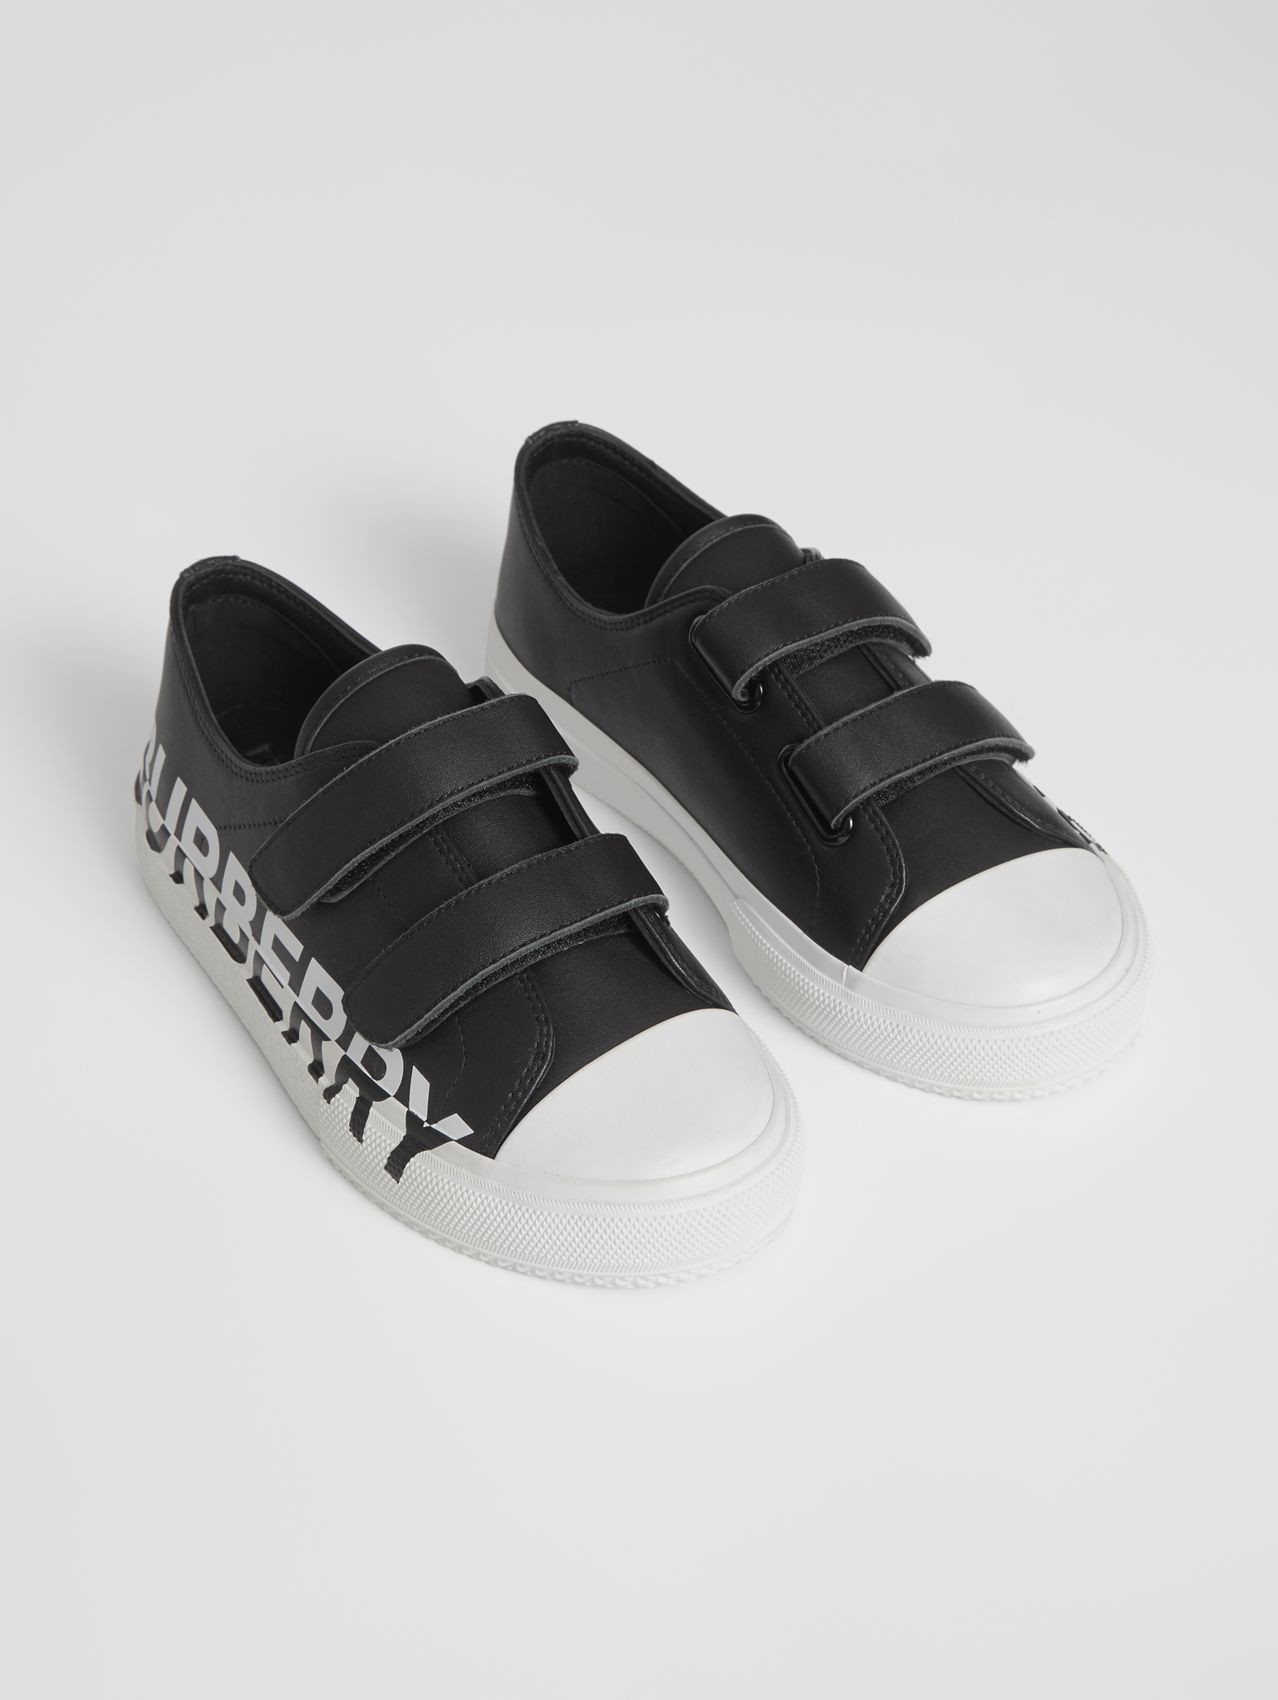 Logo Print Two-tone Leather Sneakers (Black/white)